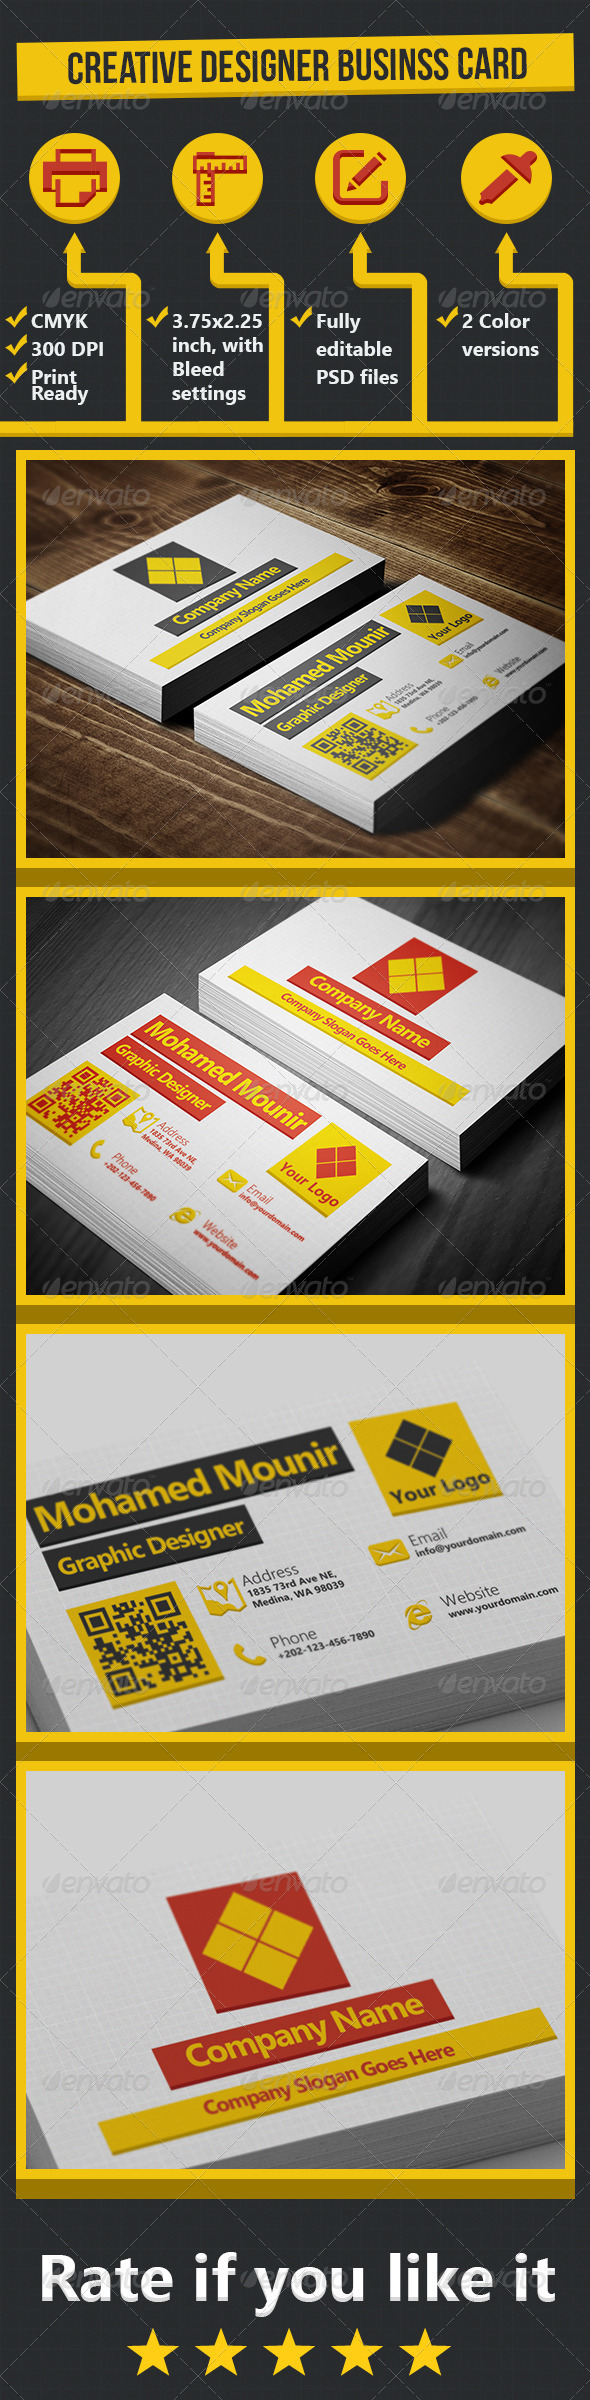 GraphicRiver Creative Designer Business Card 5105200